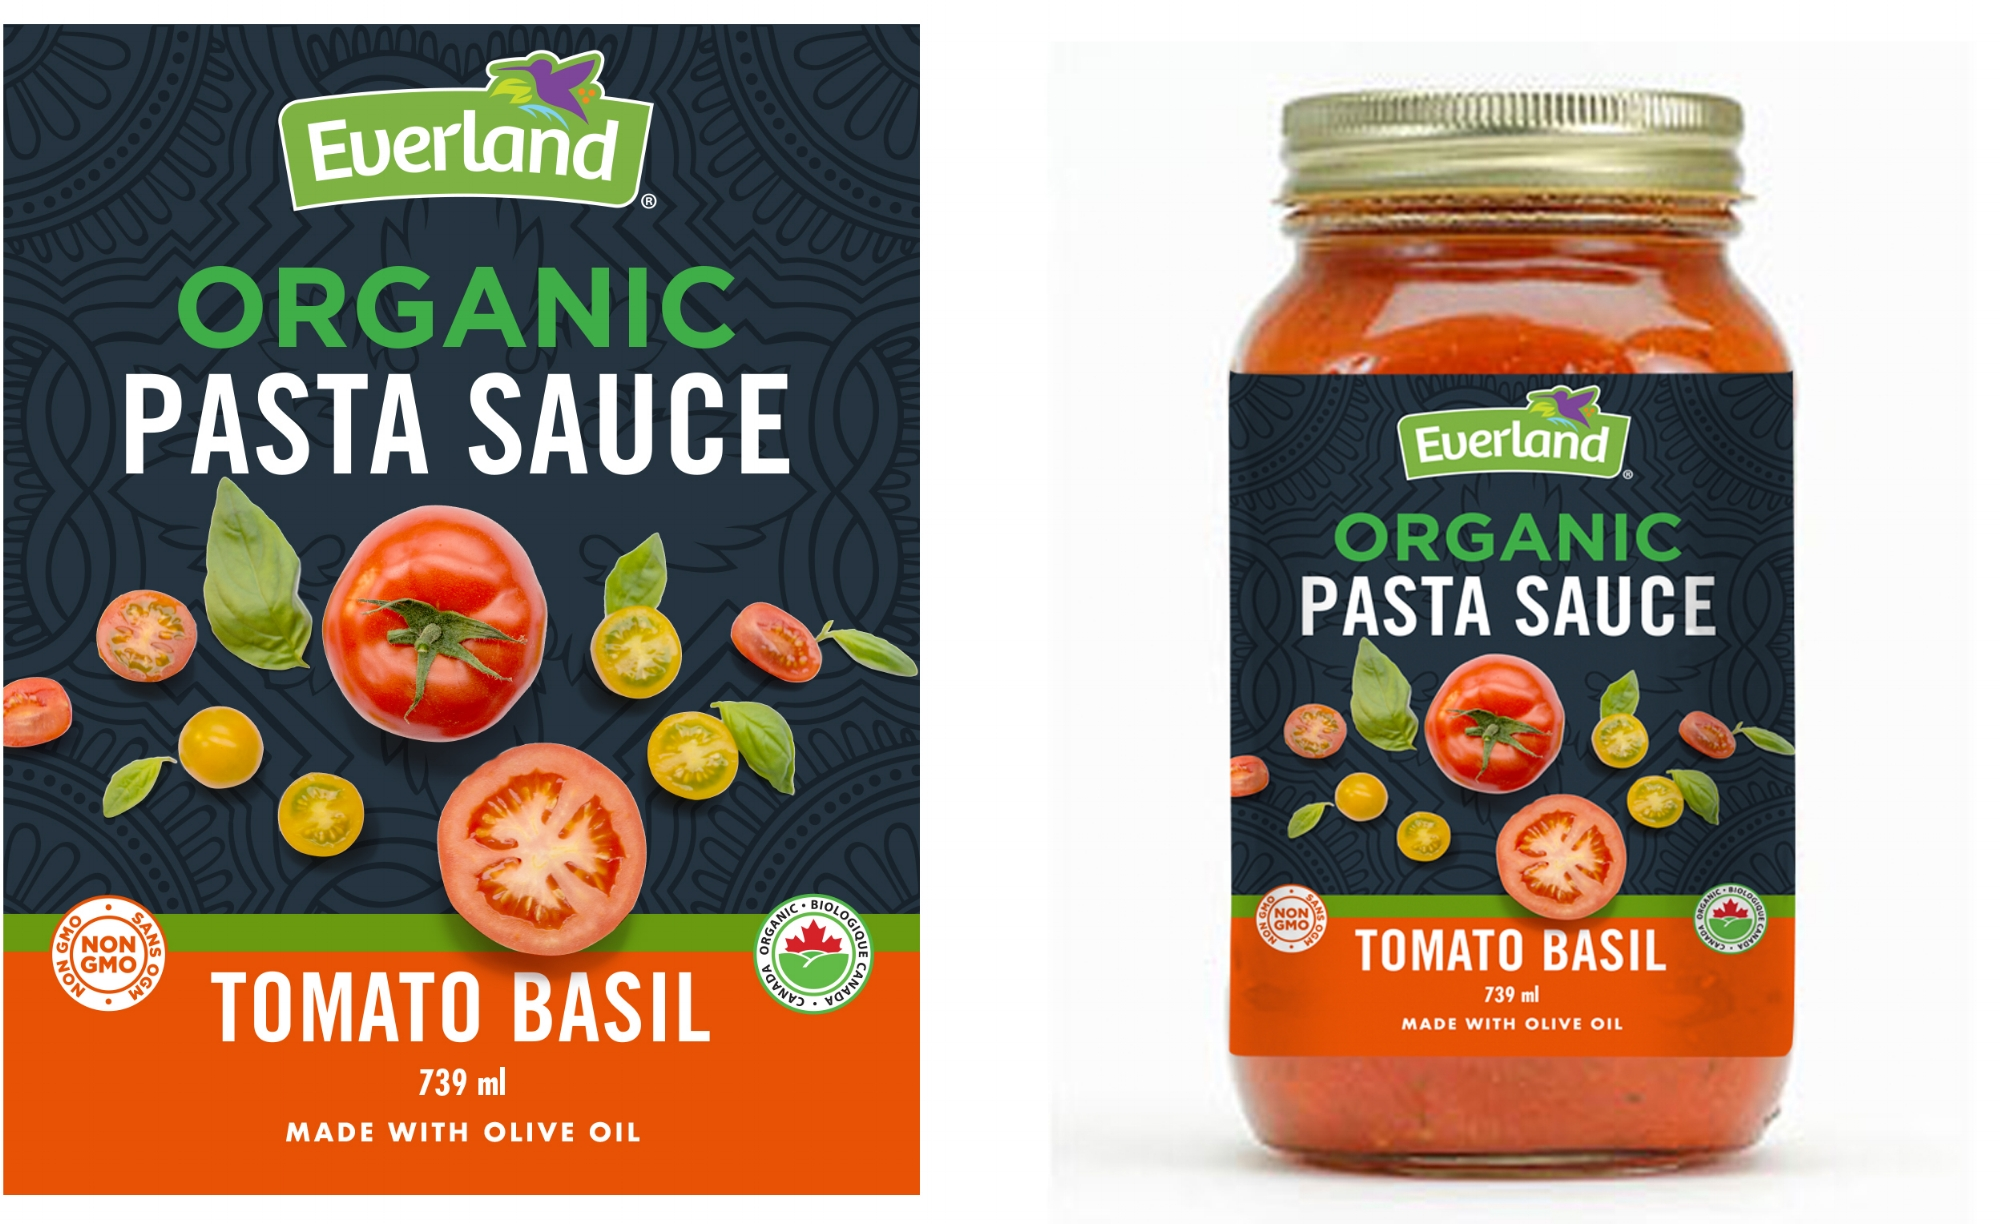 Concepts for Everland Pasta Sauce